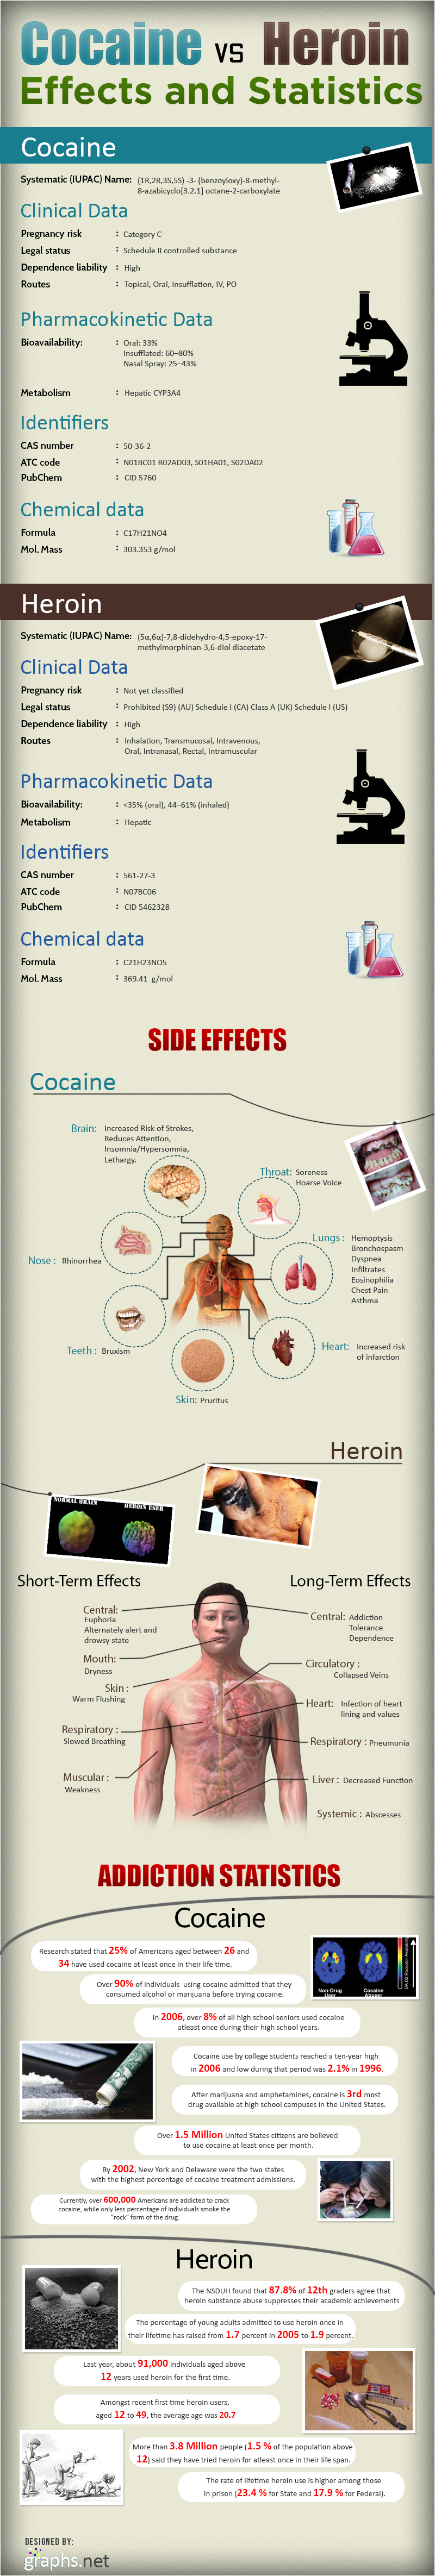 a paper on history use and effects of cocaine Cocaine addiction symptoms and effects regardless of the manner or frequency of use, cocaine abusers can experience heart attacks or strokes.